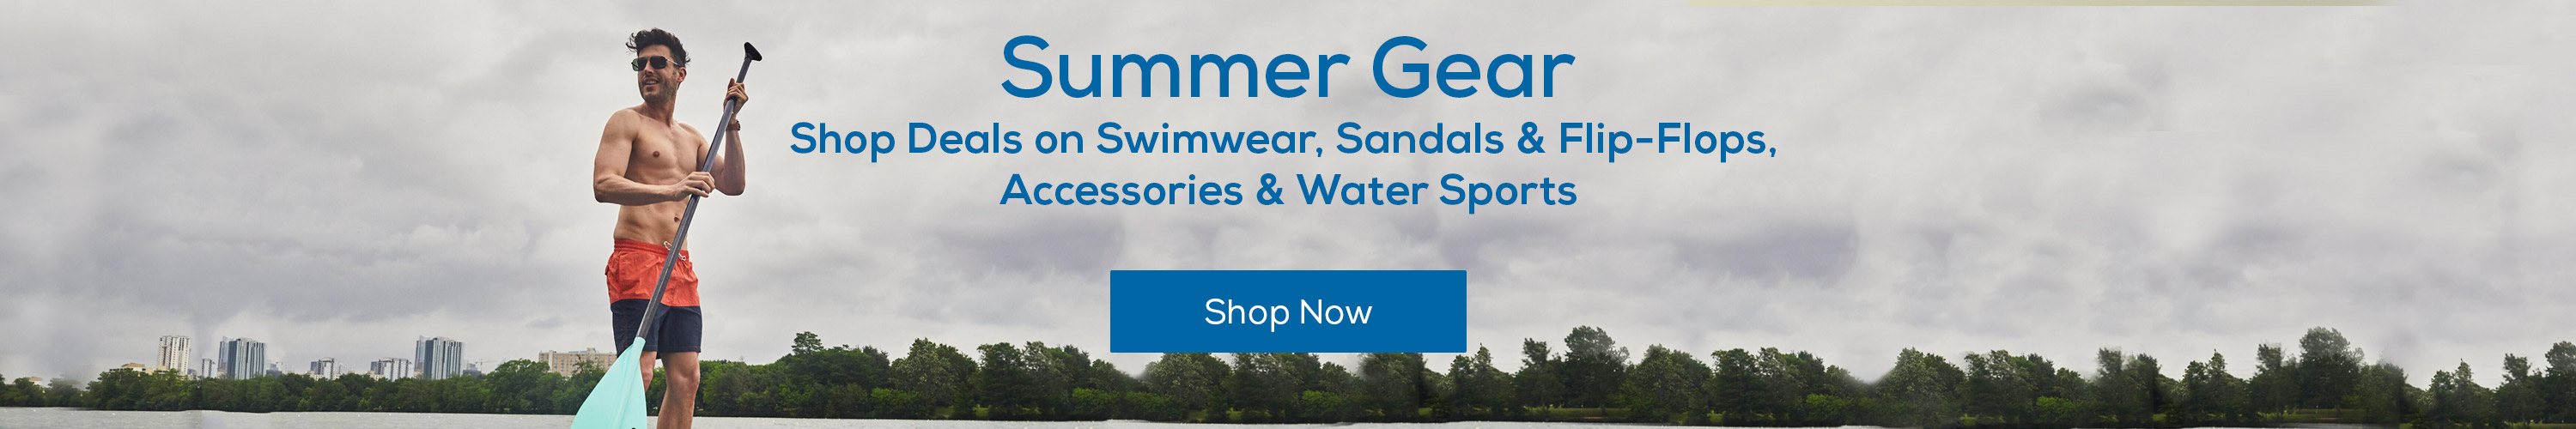 Summer Gear. Shop Deals on Swimwear, Sandals & Flip-Flops, Accessories & Water Sports